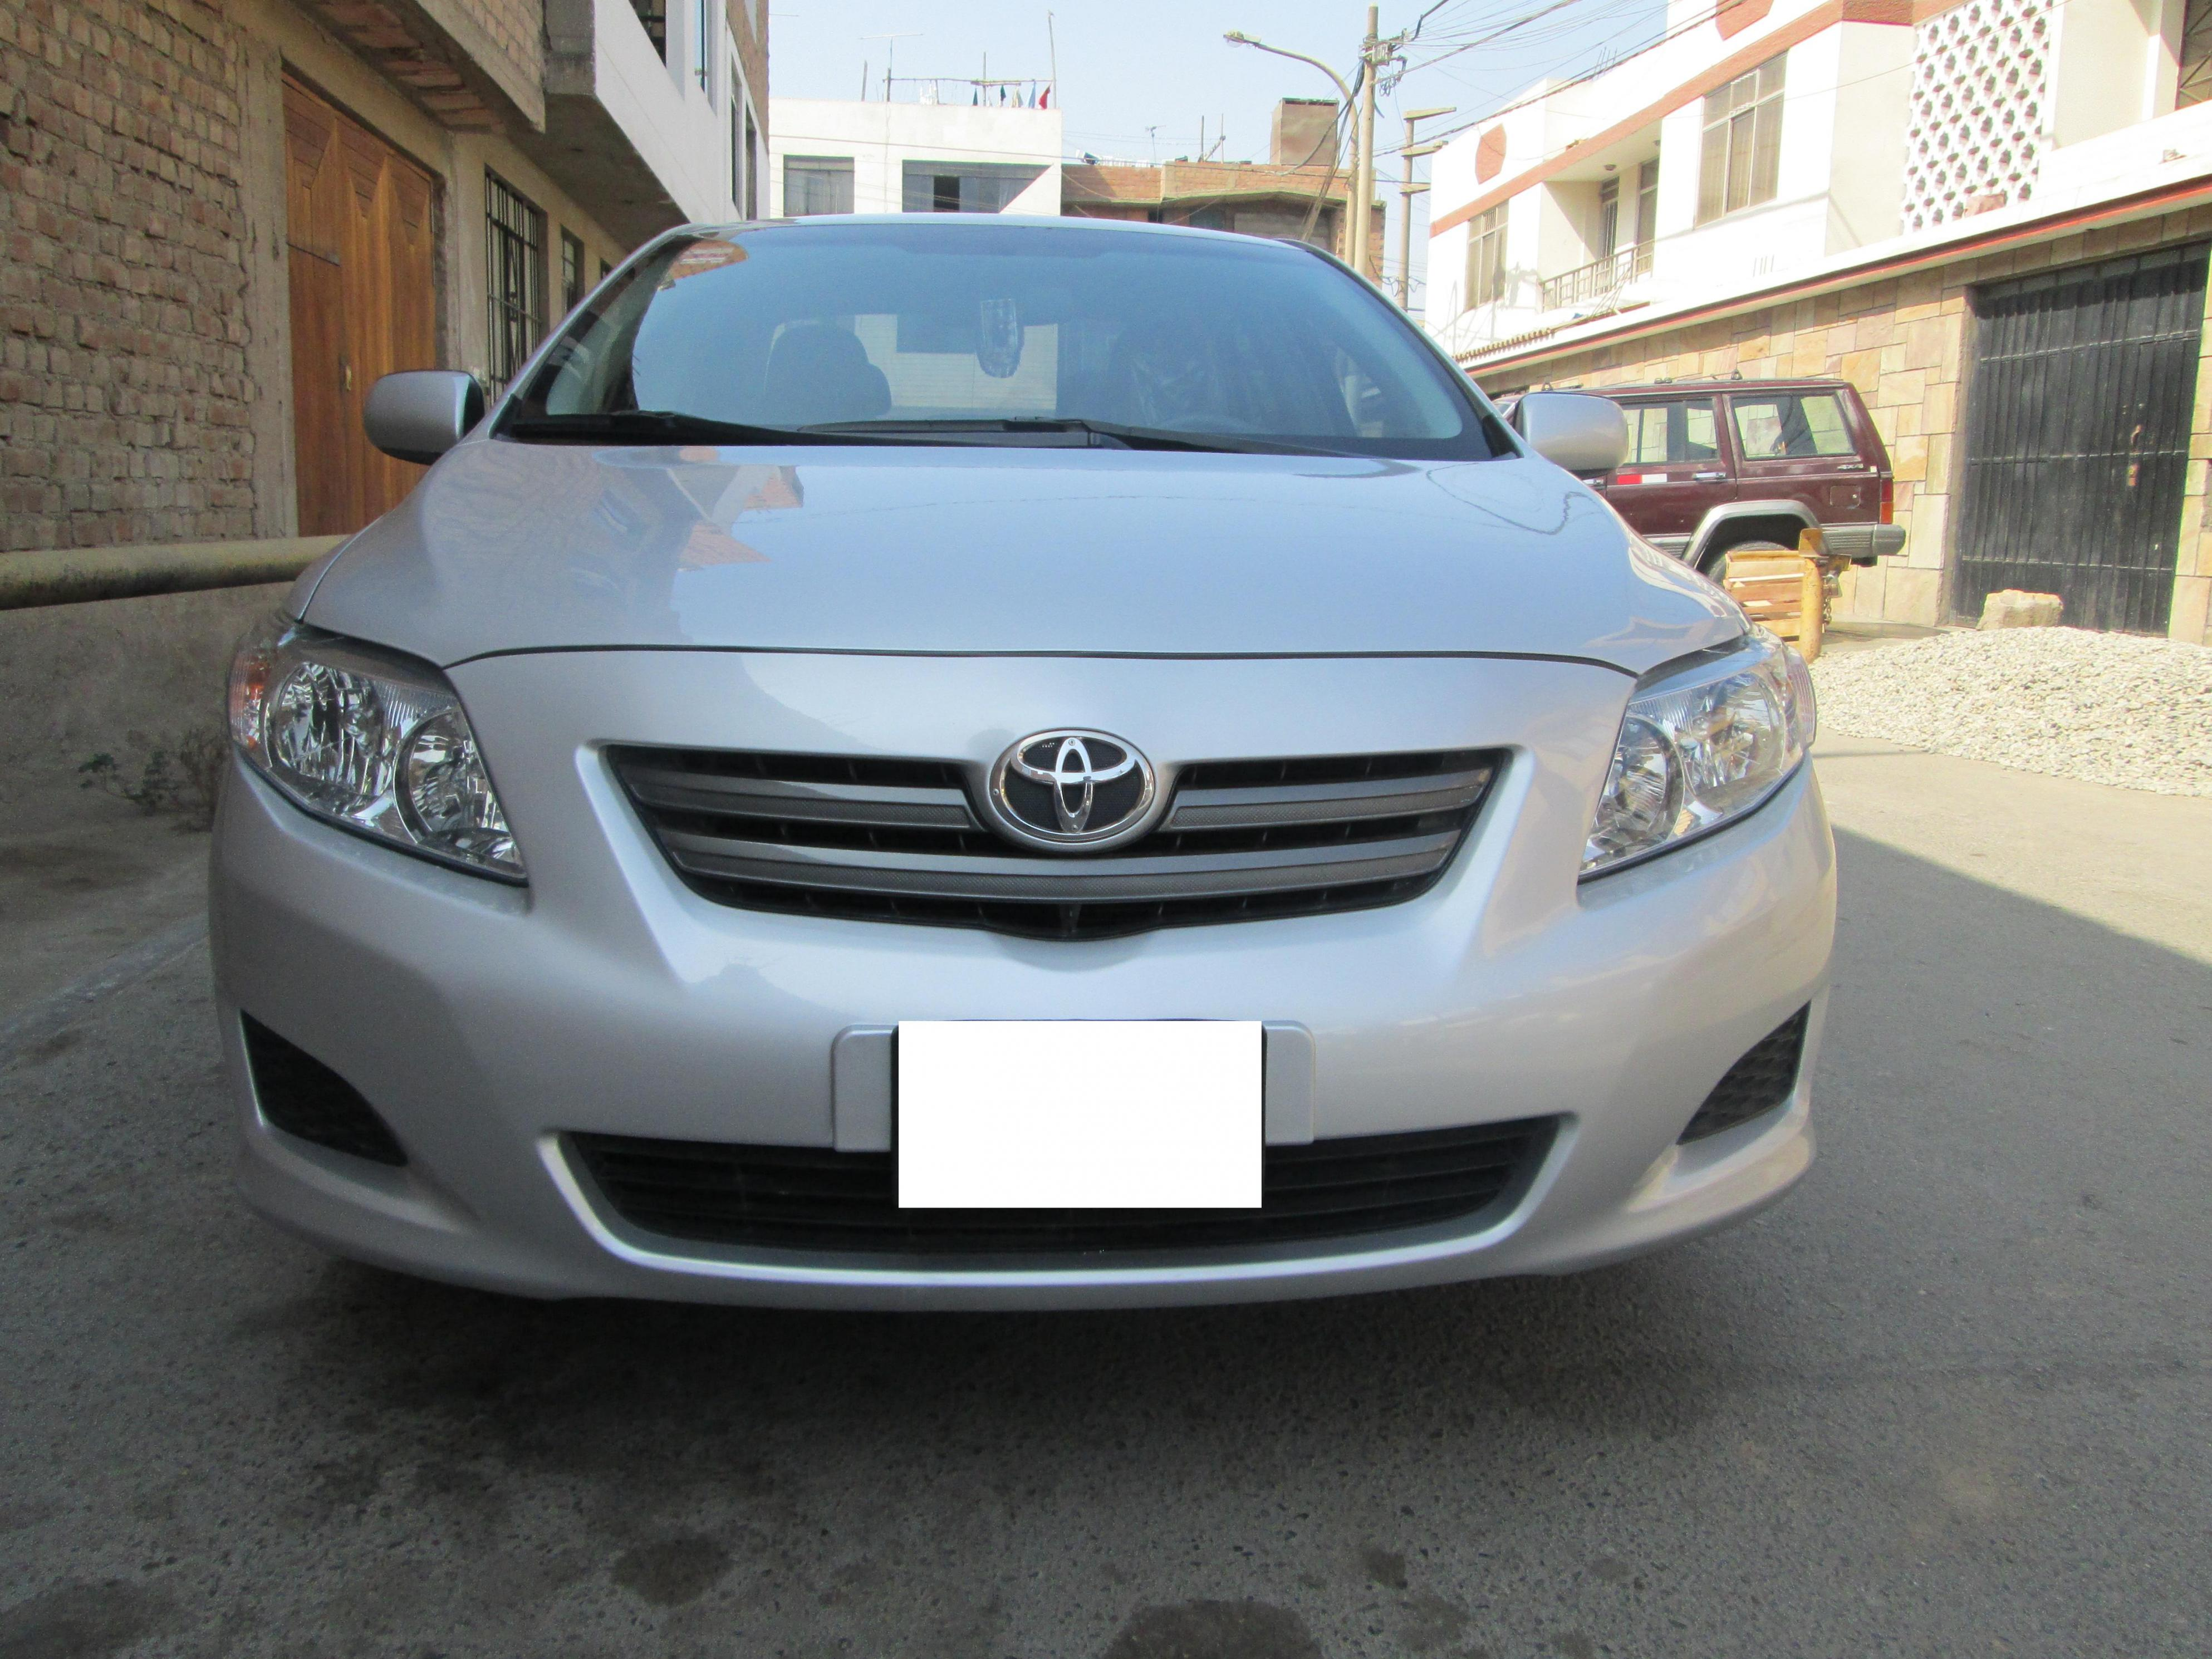 Toyota Corolla 1.3 2008 photo - 7